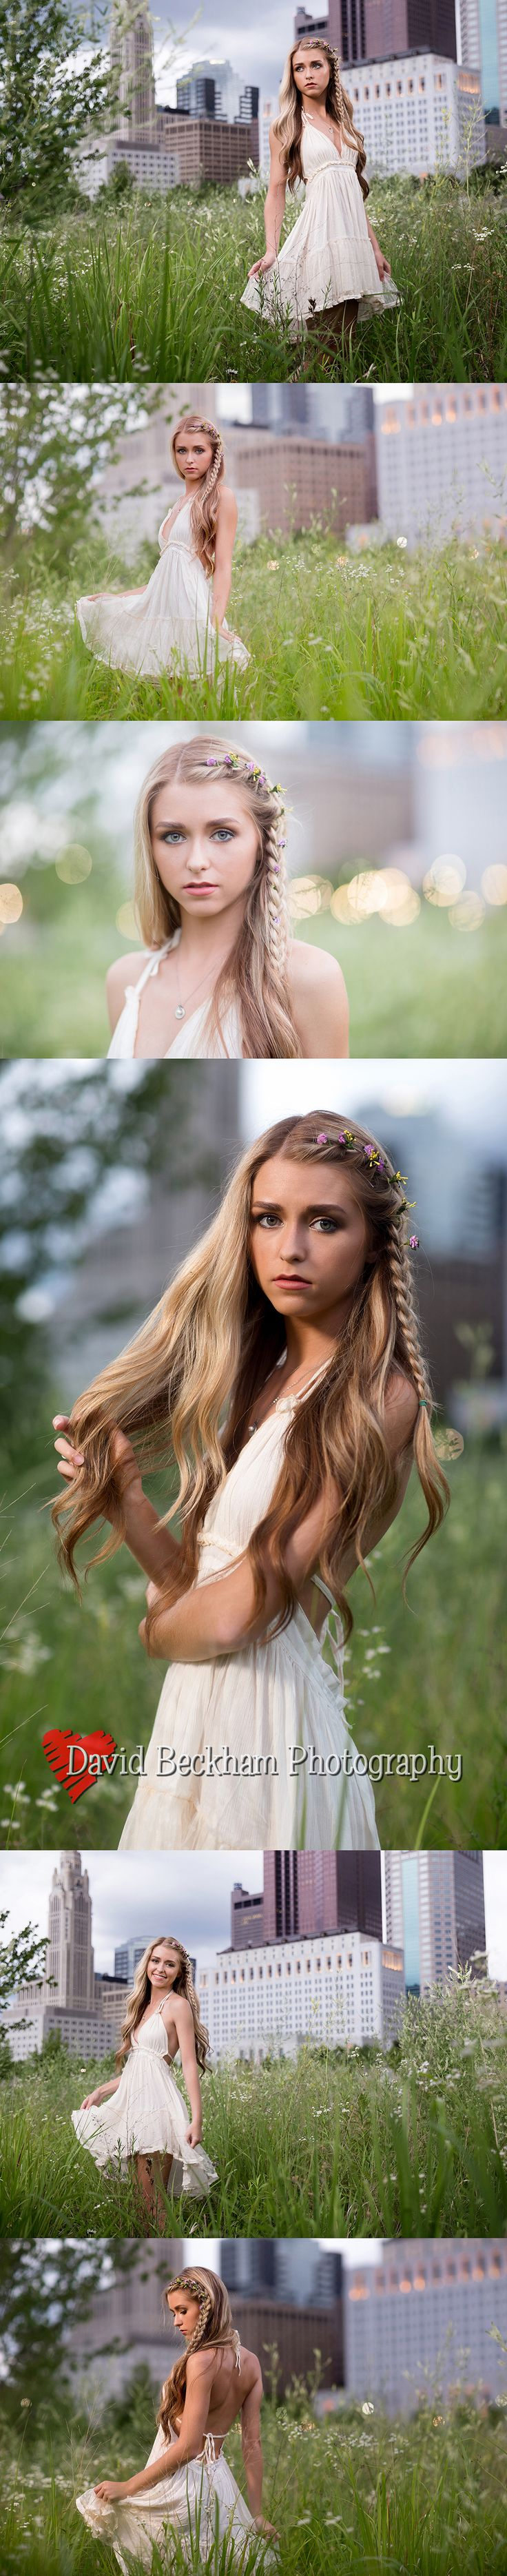 Urban Wildflowers with model Jessie.  Great little boho dress and flowers in her braided hair make for a serious and fun senior portrait look.